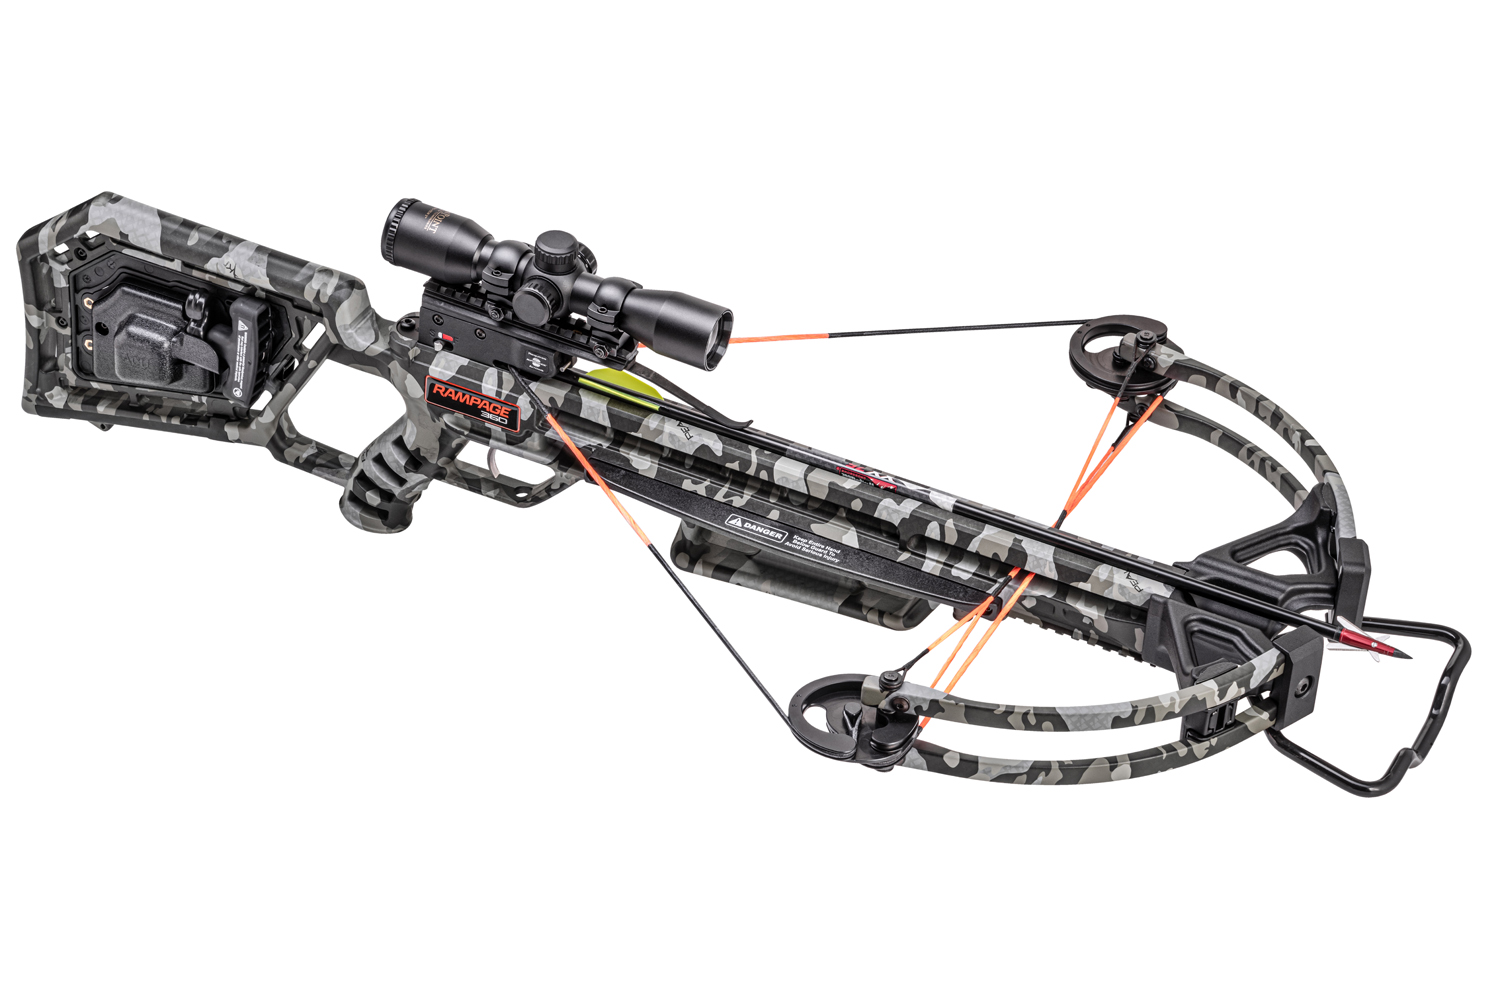 Wicked Ridge Blackhawk 360 Crossbow Set Coming March 2021